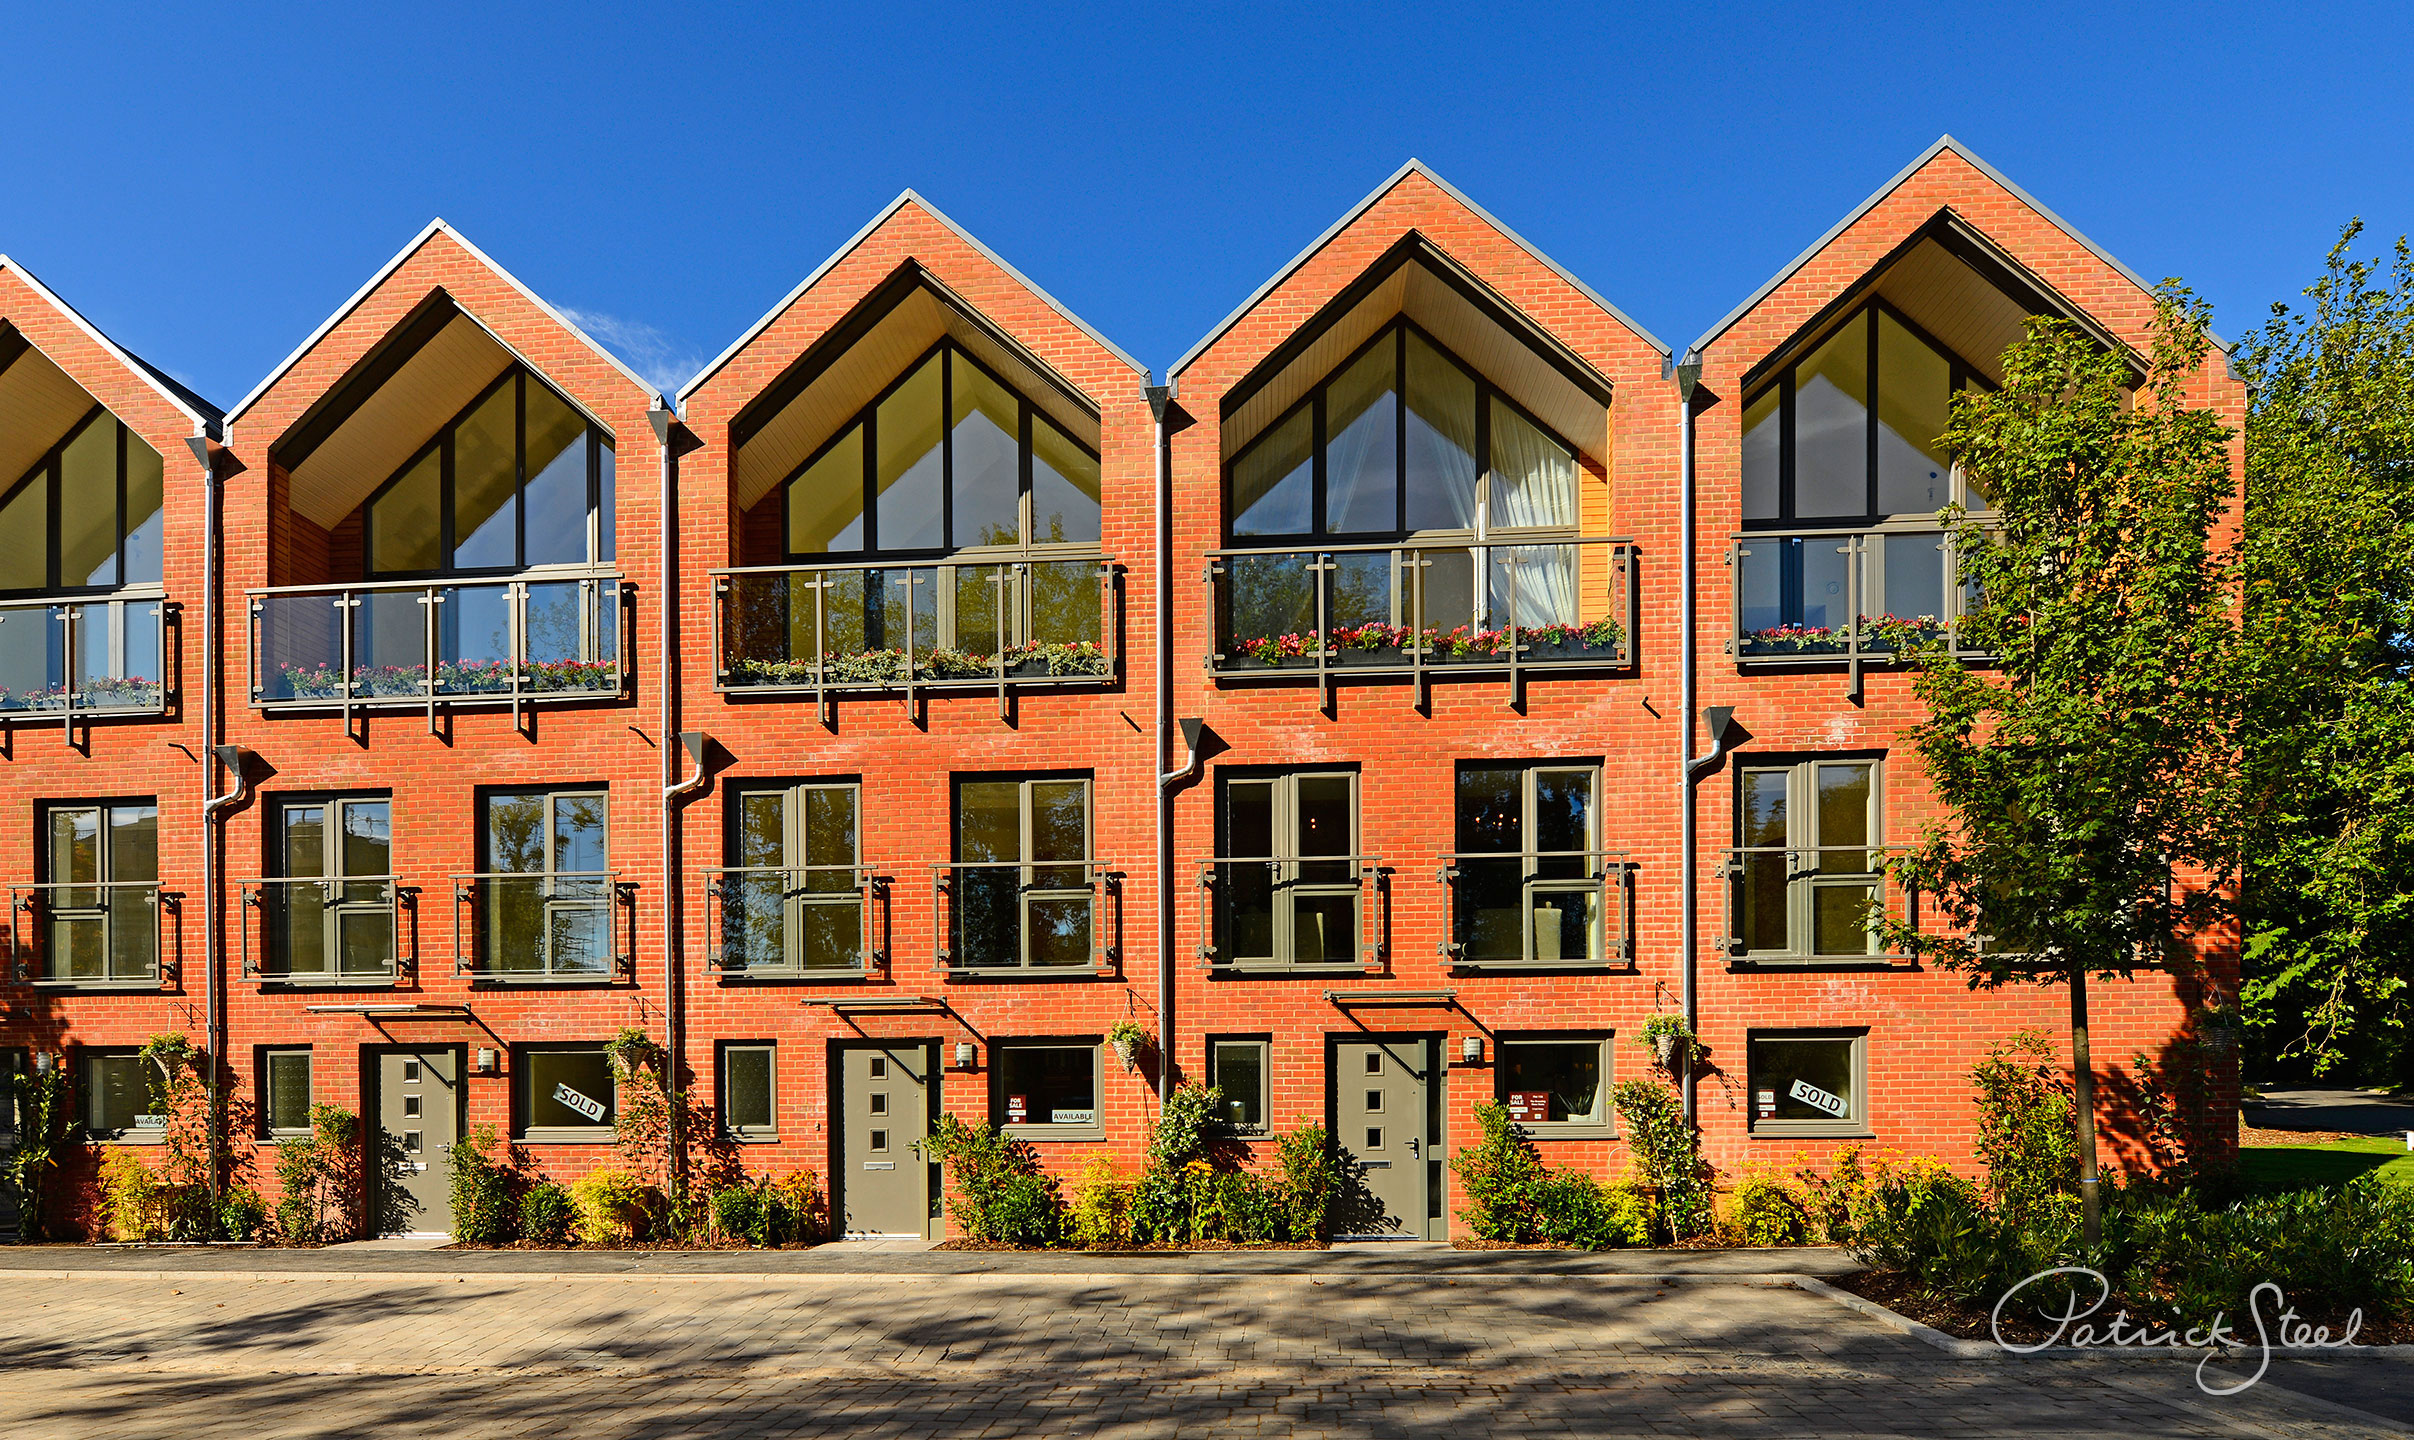 Mr Steel | Graylingwell Park | Commissioned by Linden Homes